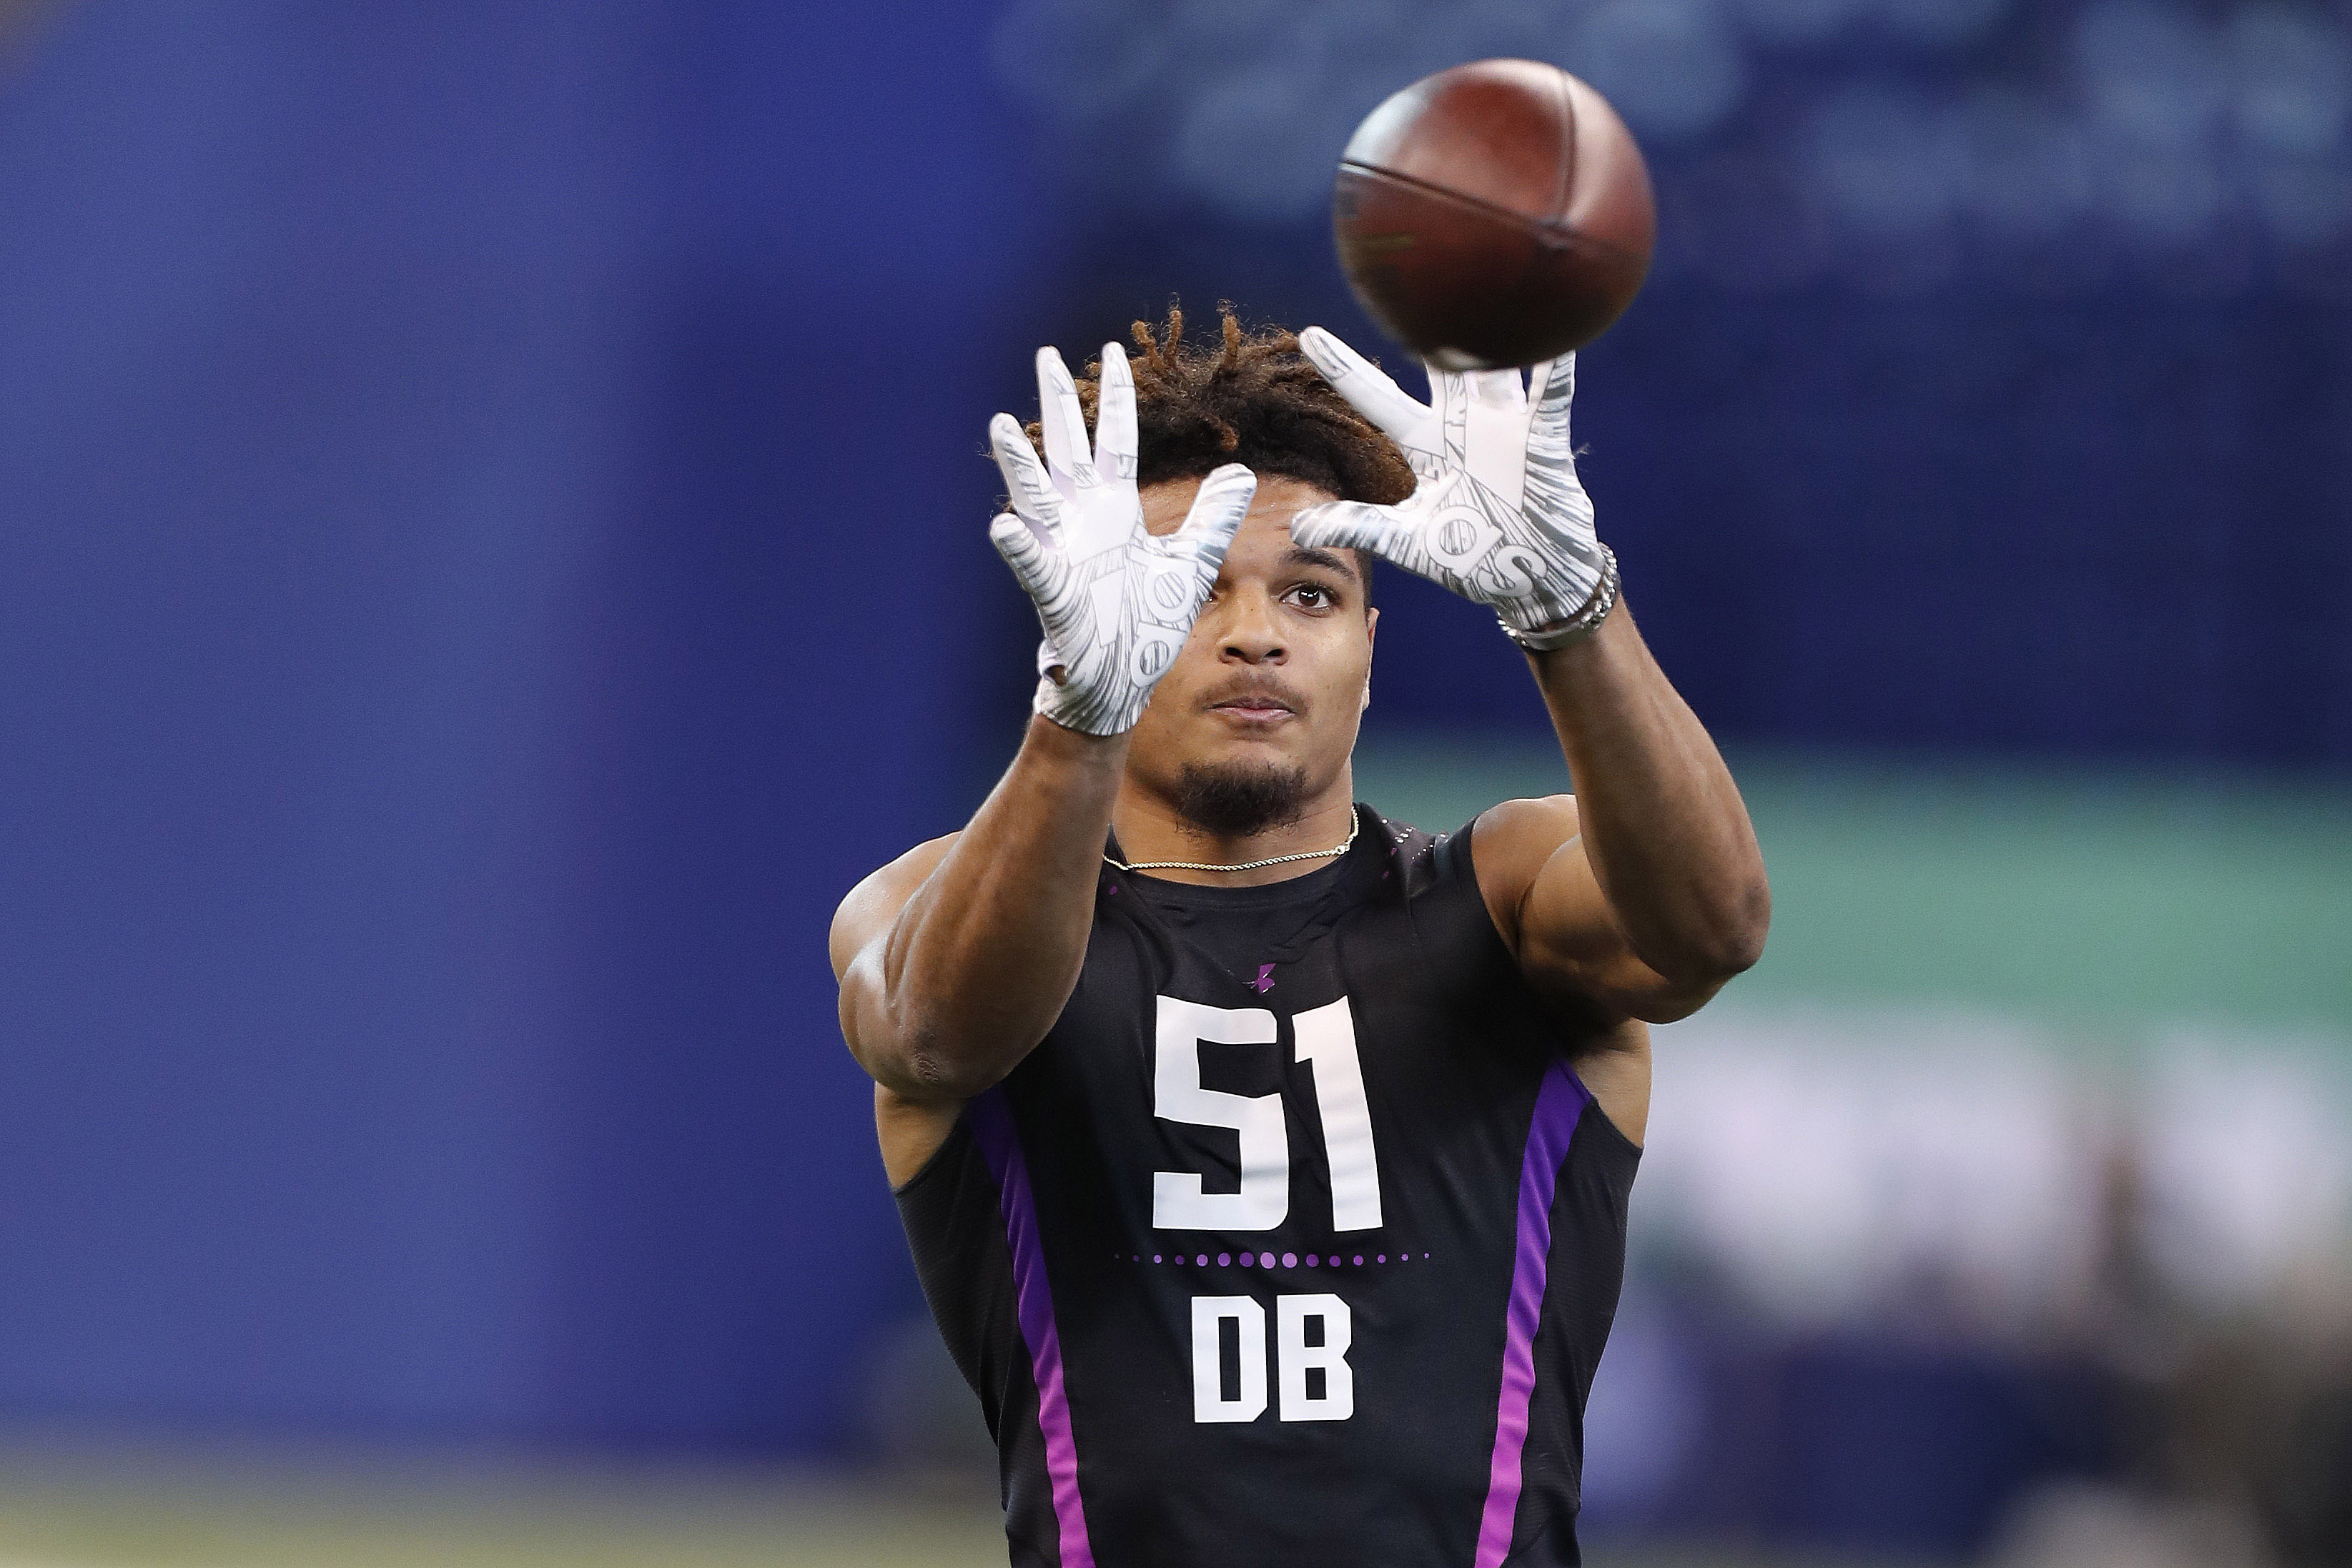 NFL Draft: Dolphins nab versatile DB Minkah Fitzpatrick with No. 11 pick